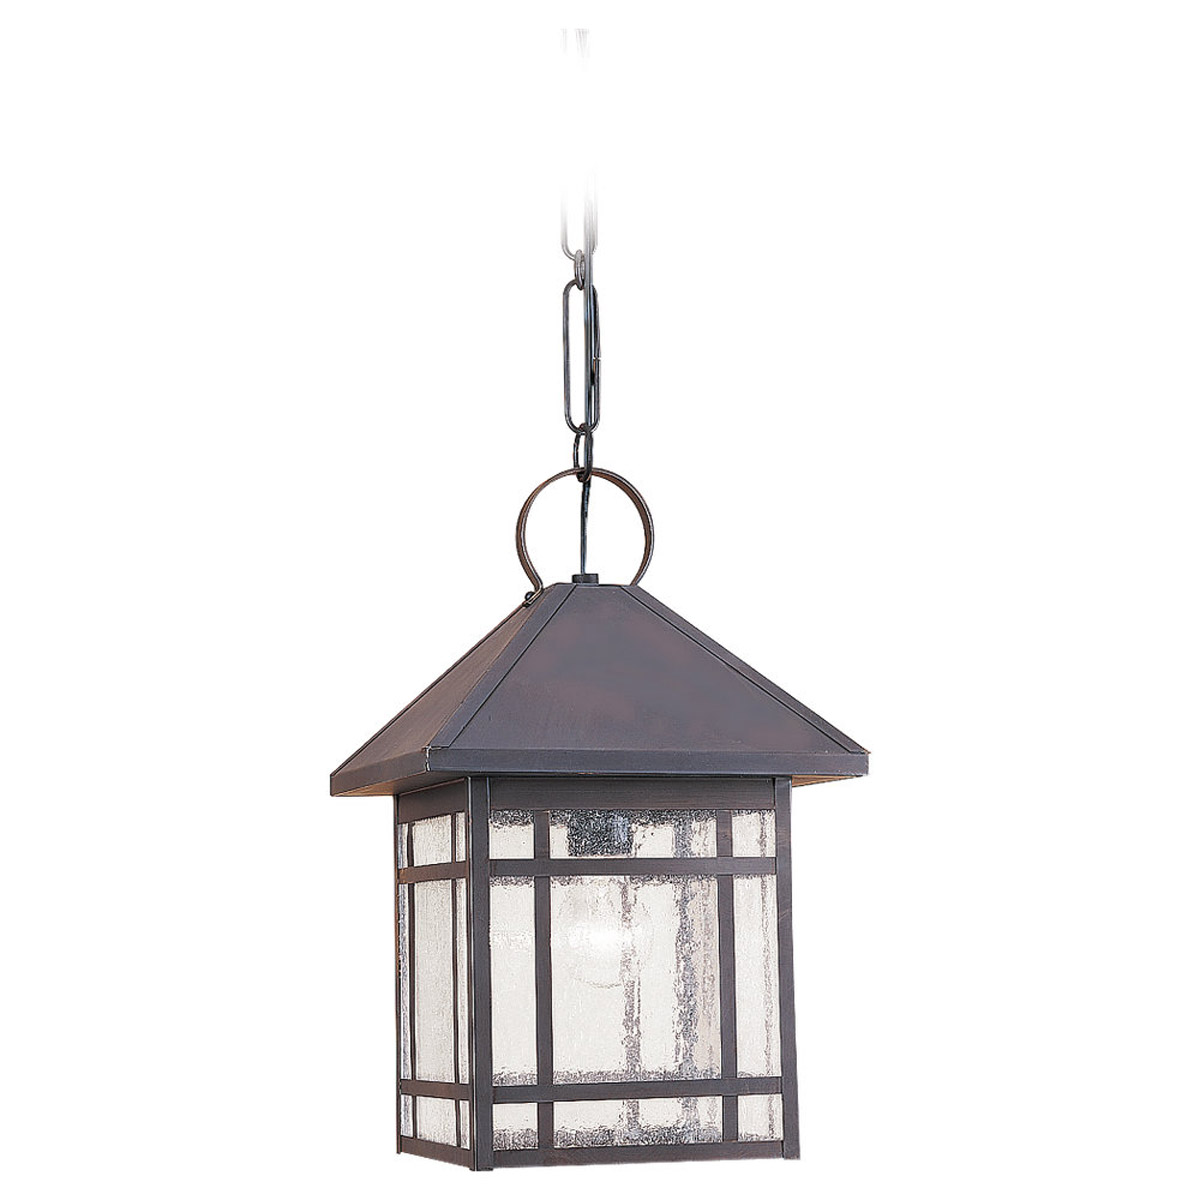 Sea Gull Lighting Largo 1 Light Outdoor Pendant in Antique Bronze 60010-71 photo